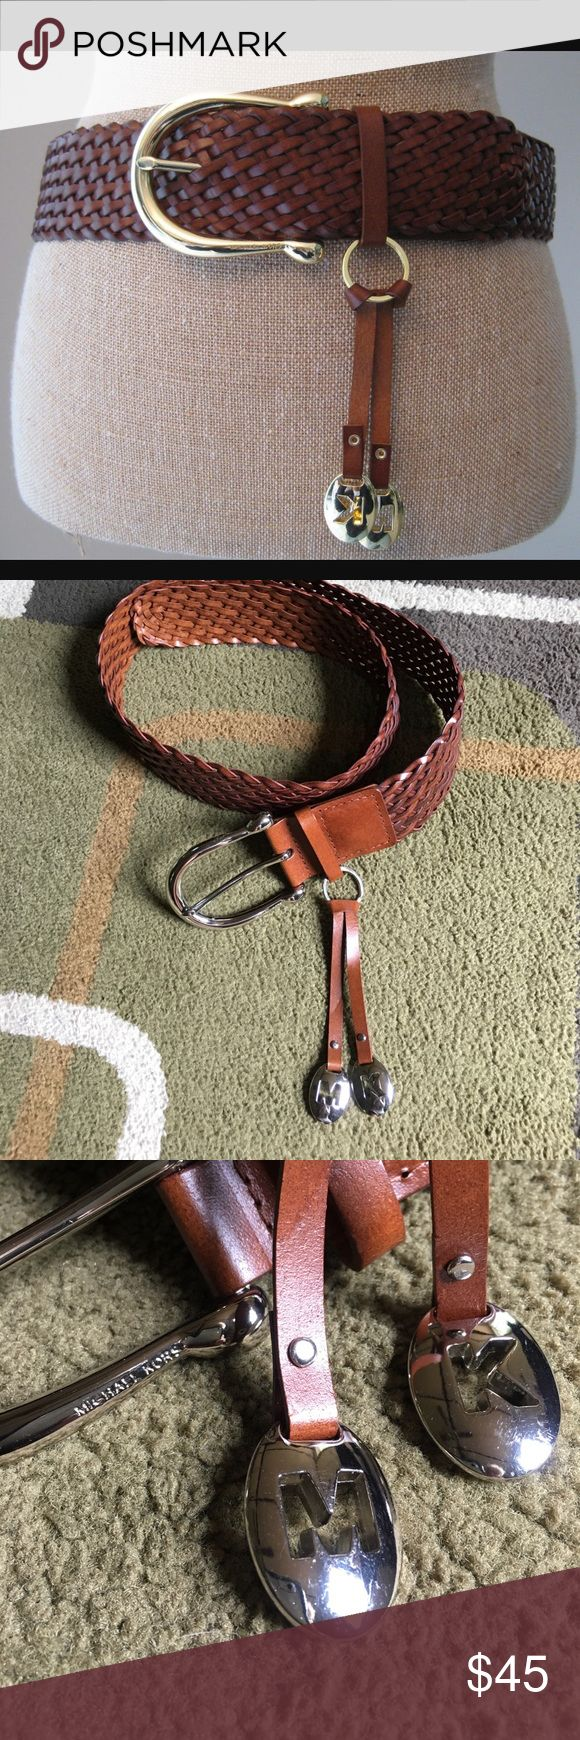 """Michael Kors belt Michael Kors woven style leather belt with silver hardware belt strap without buckle measures approx 40"""" Michael Kors Accessories Belts"""